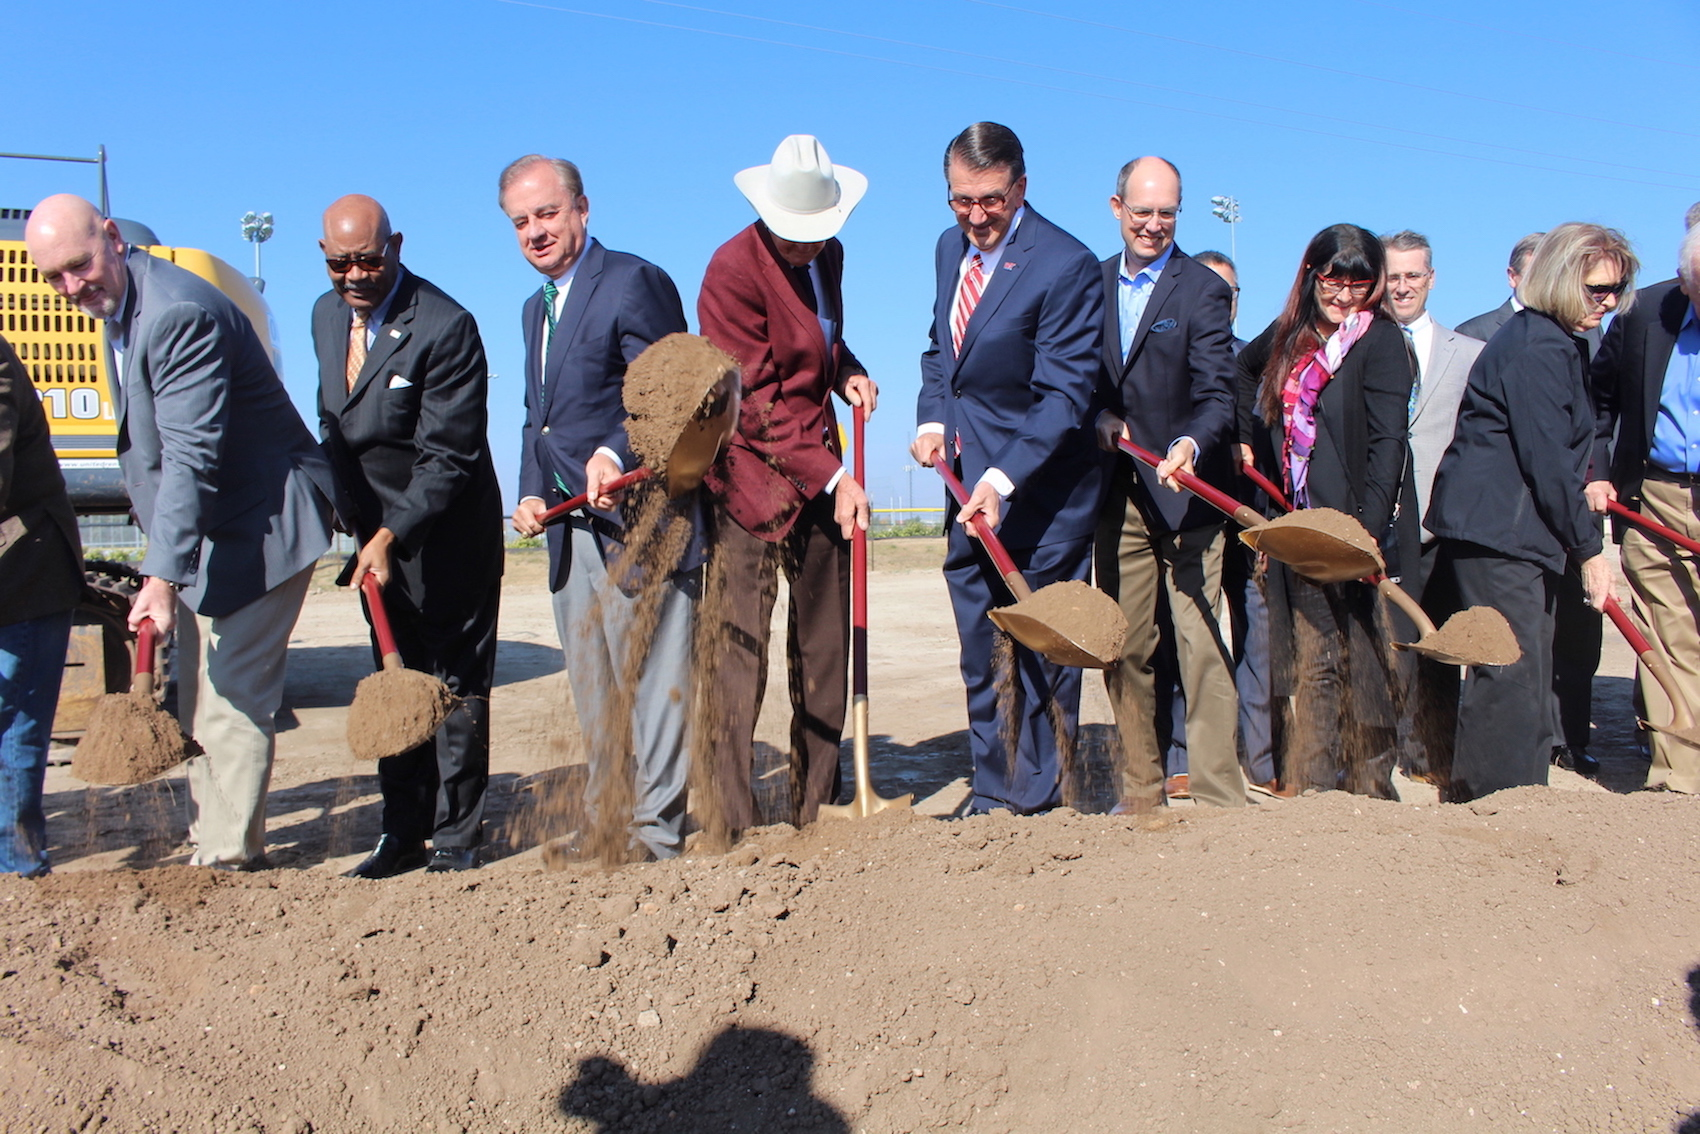 WTAMU President, Dr. Walter Wendler officially breaks ground at the site the future Agricultural Sciences Complex.